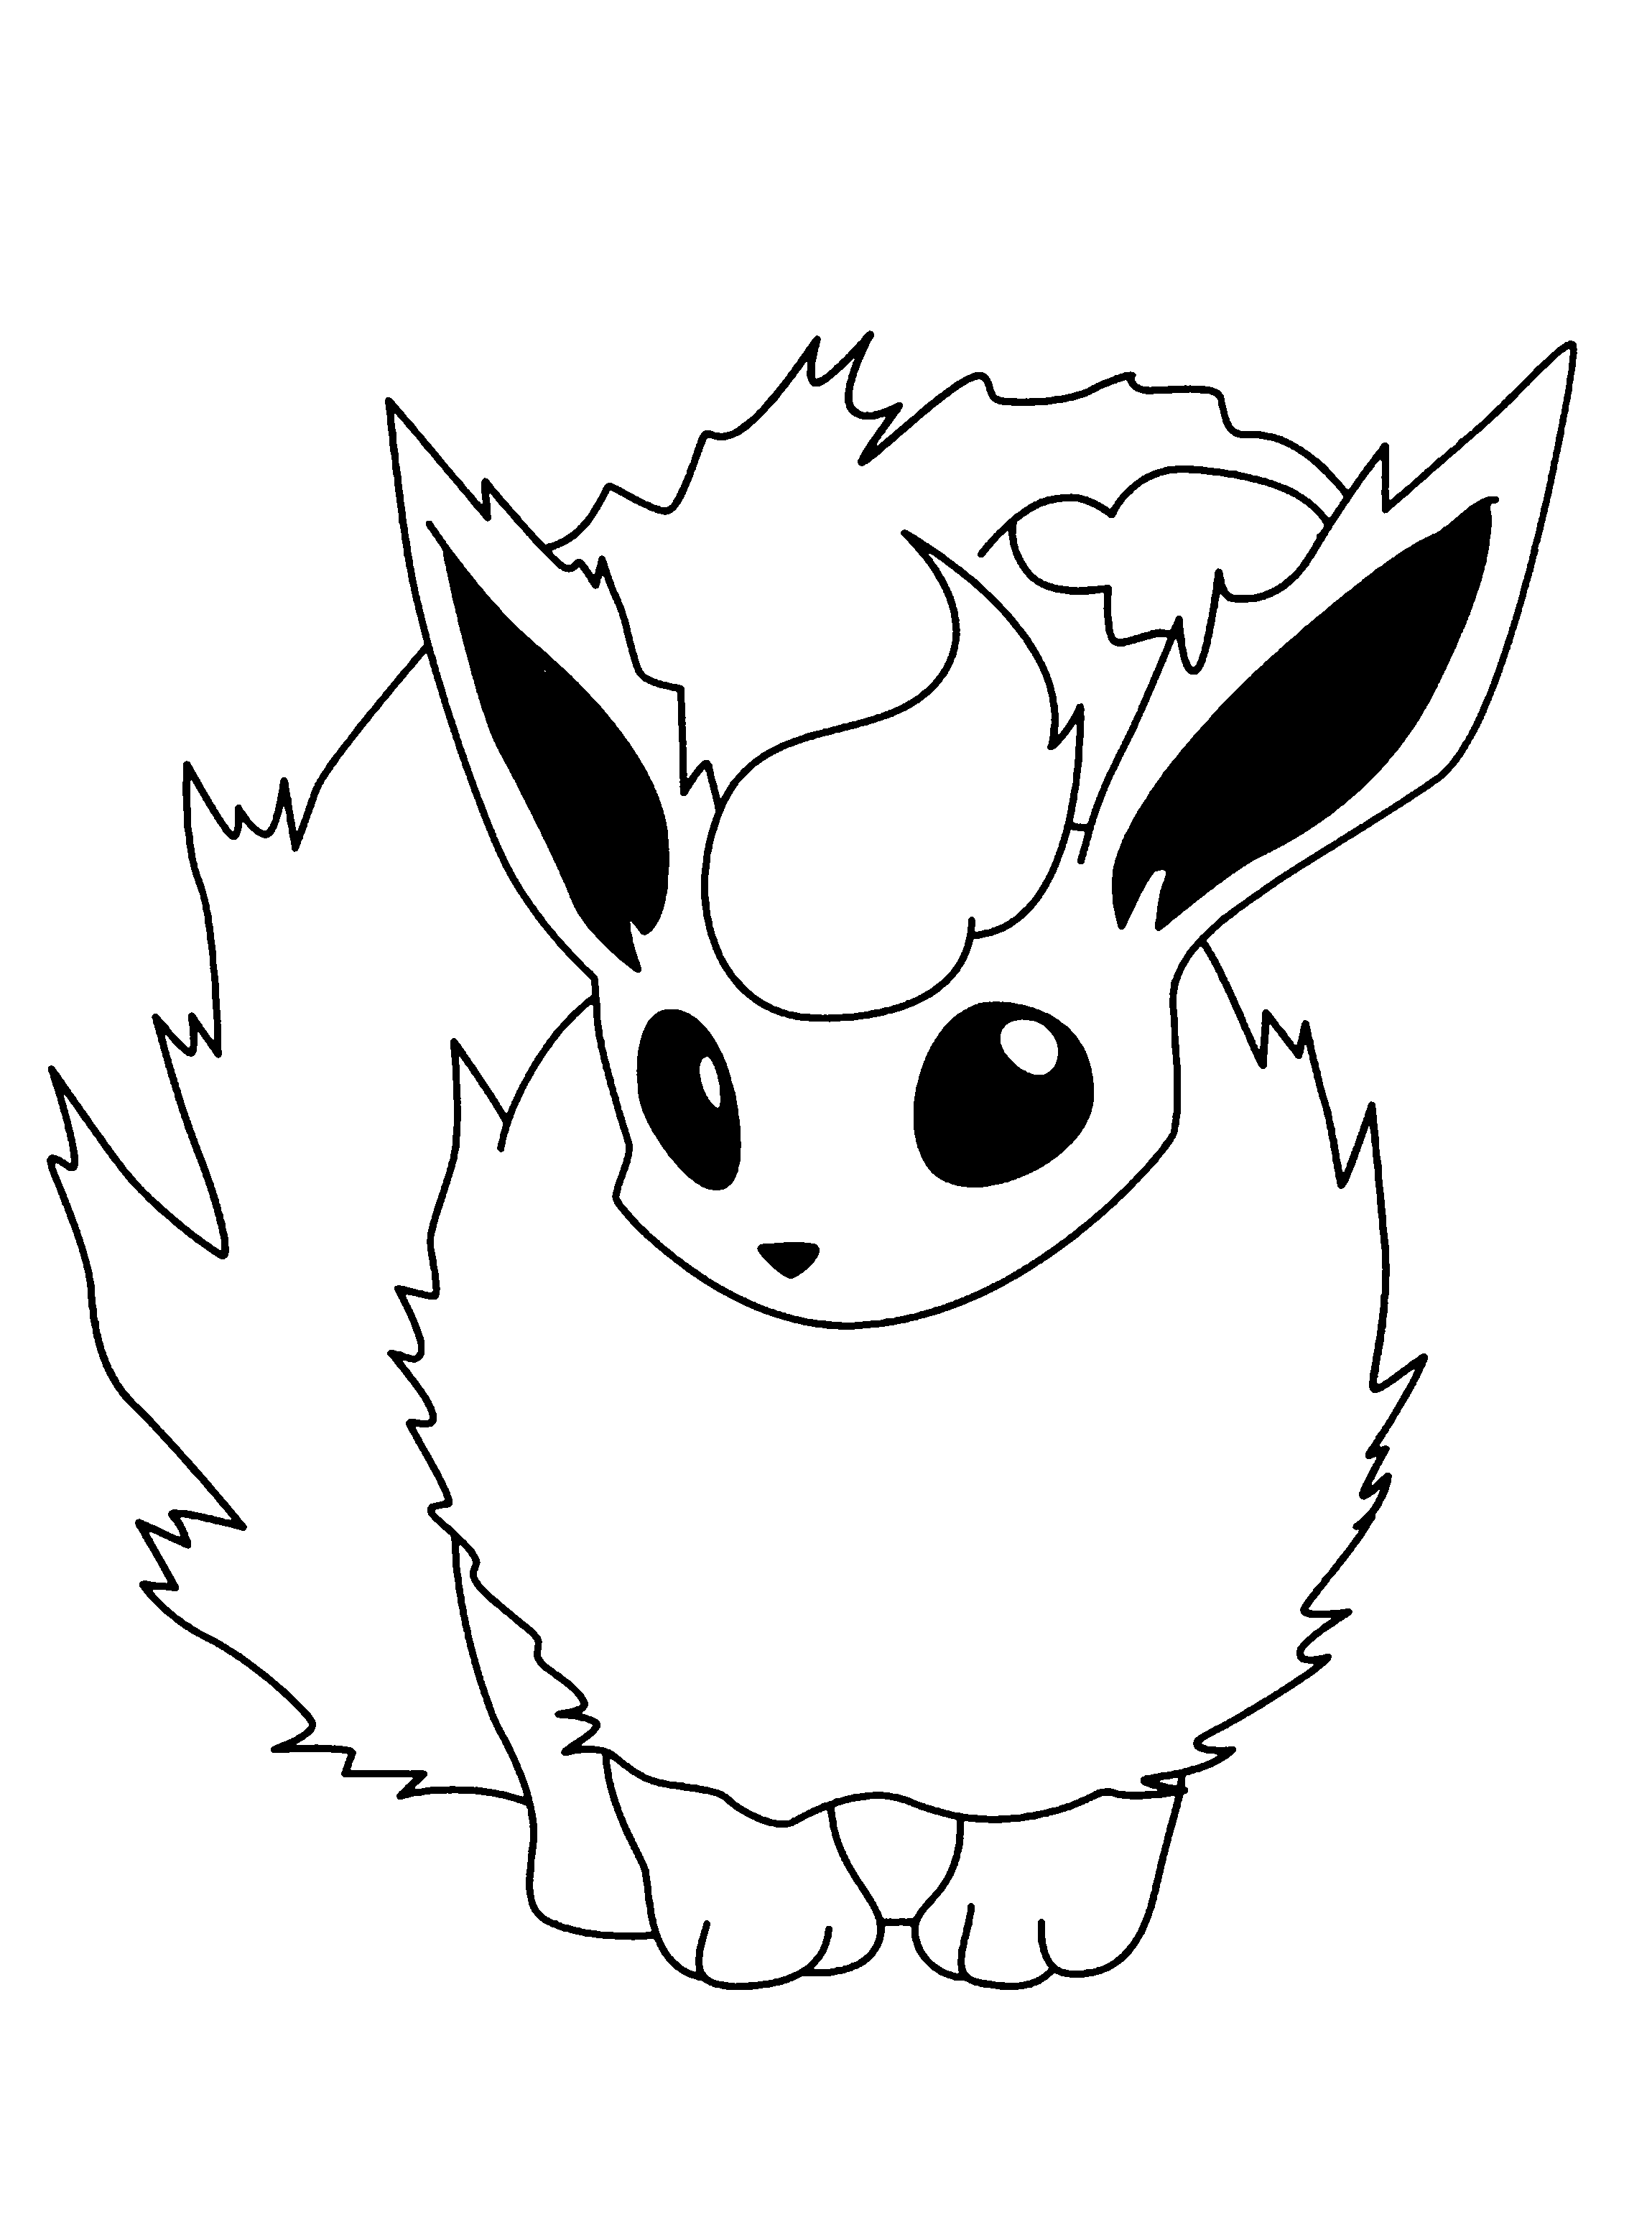 coloring pokemon free legendary pokemon coloring pages for kids coloring pokemon